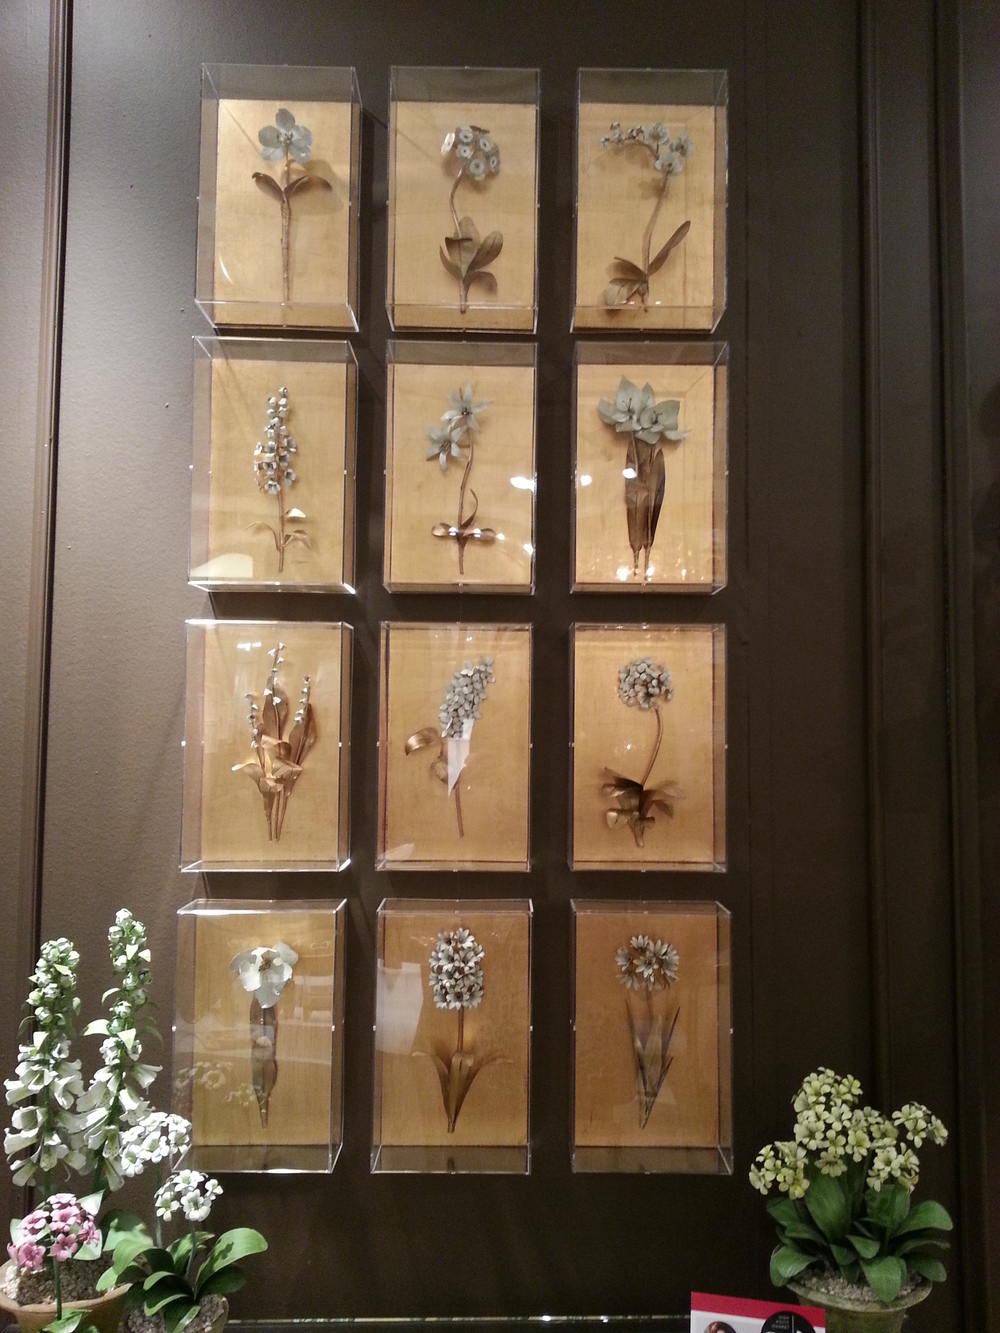 Incredibly chic flowers made from brass and hand painted. Such a beautiful display!